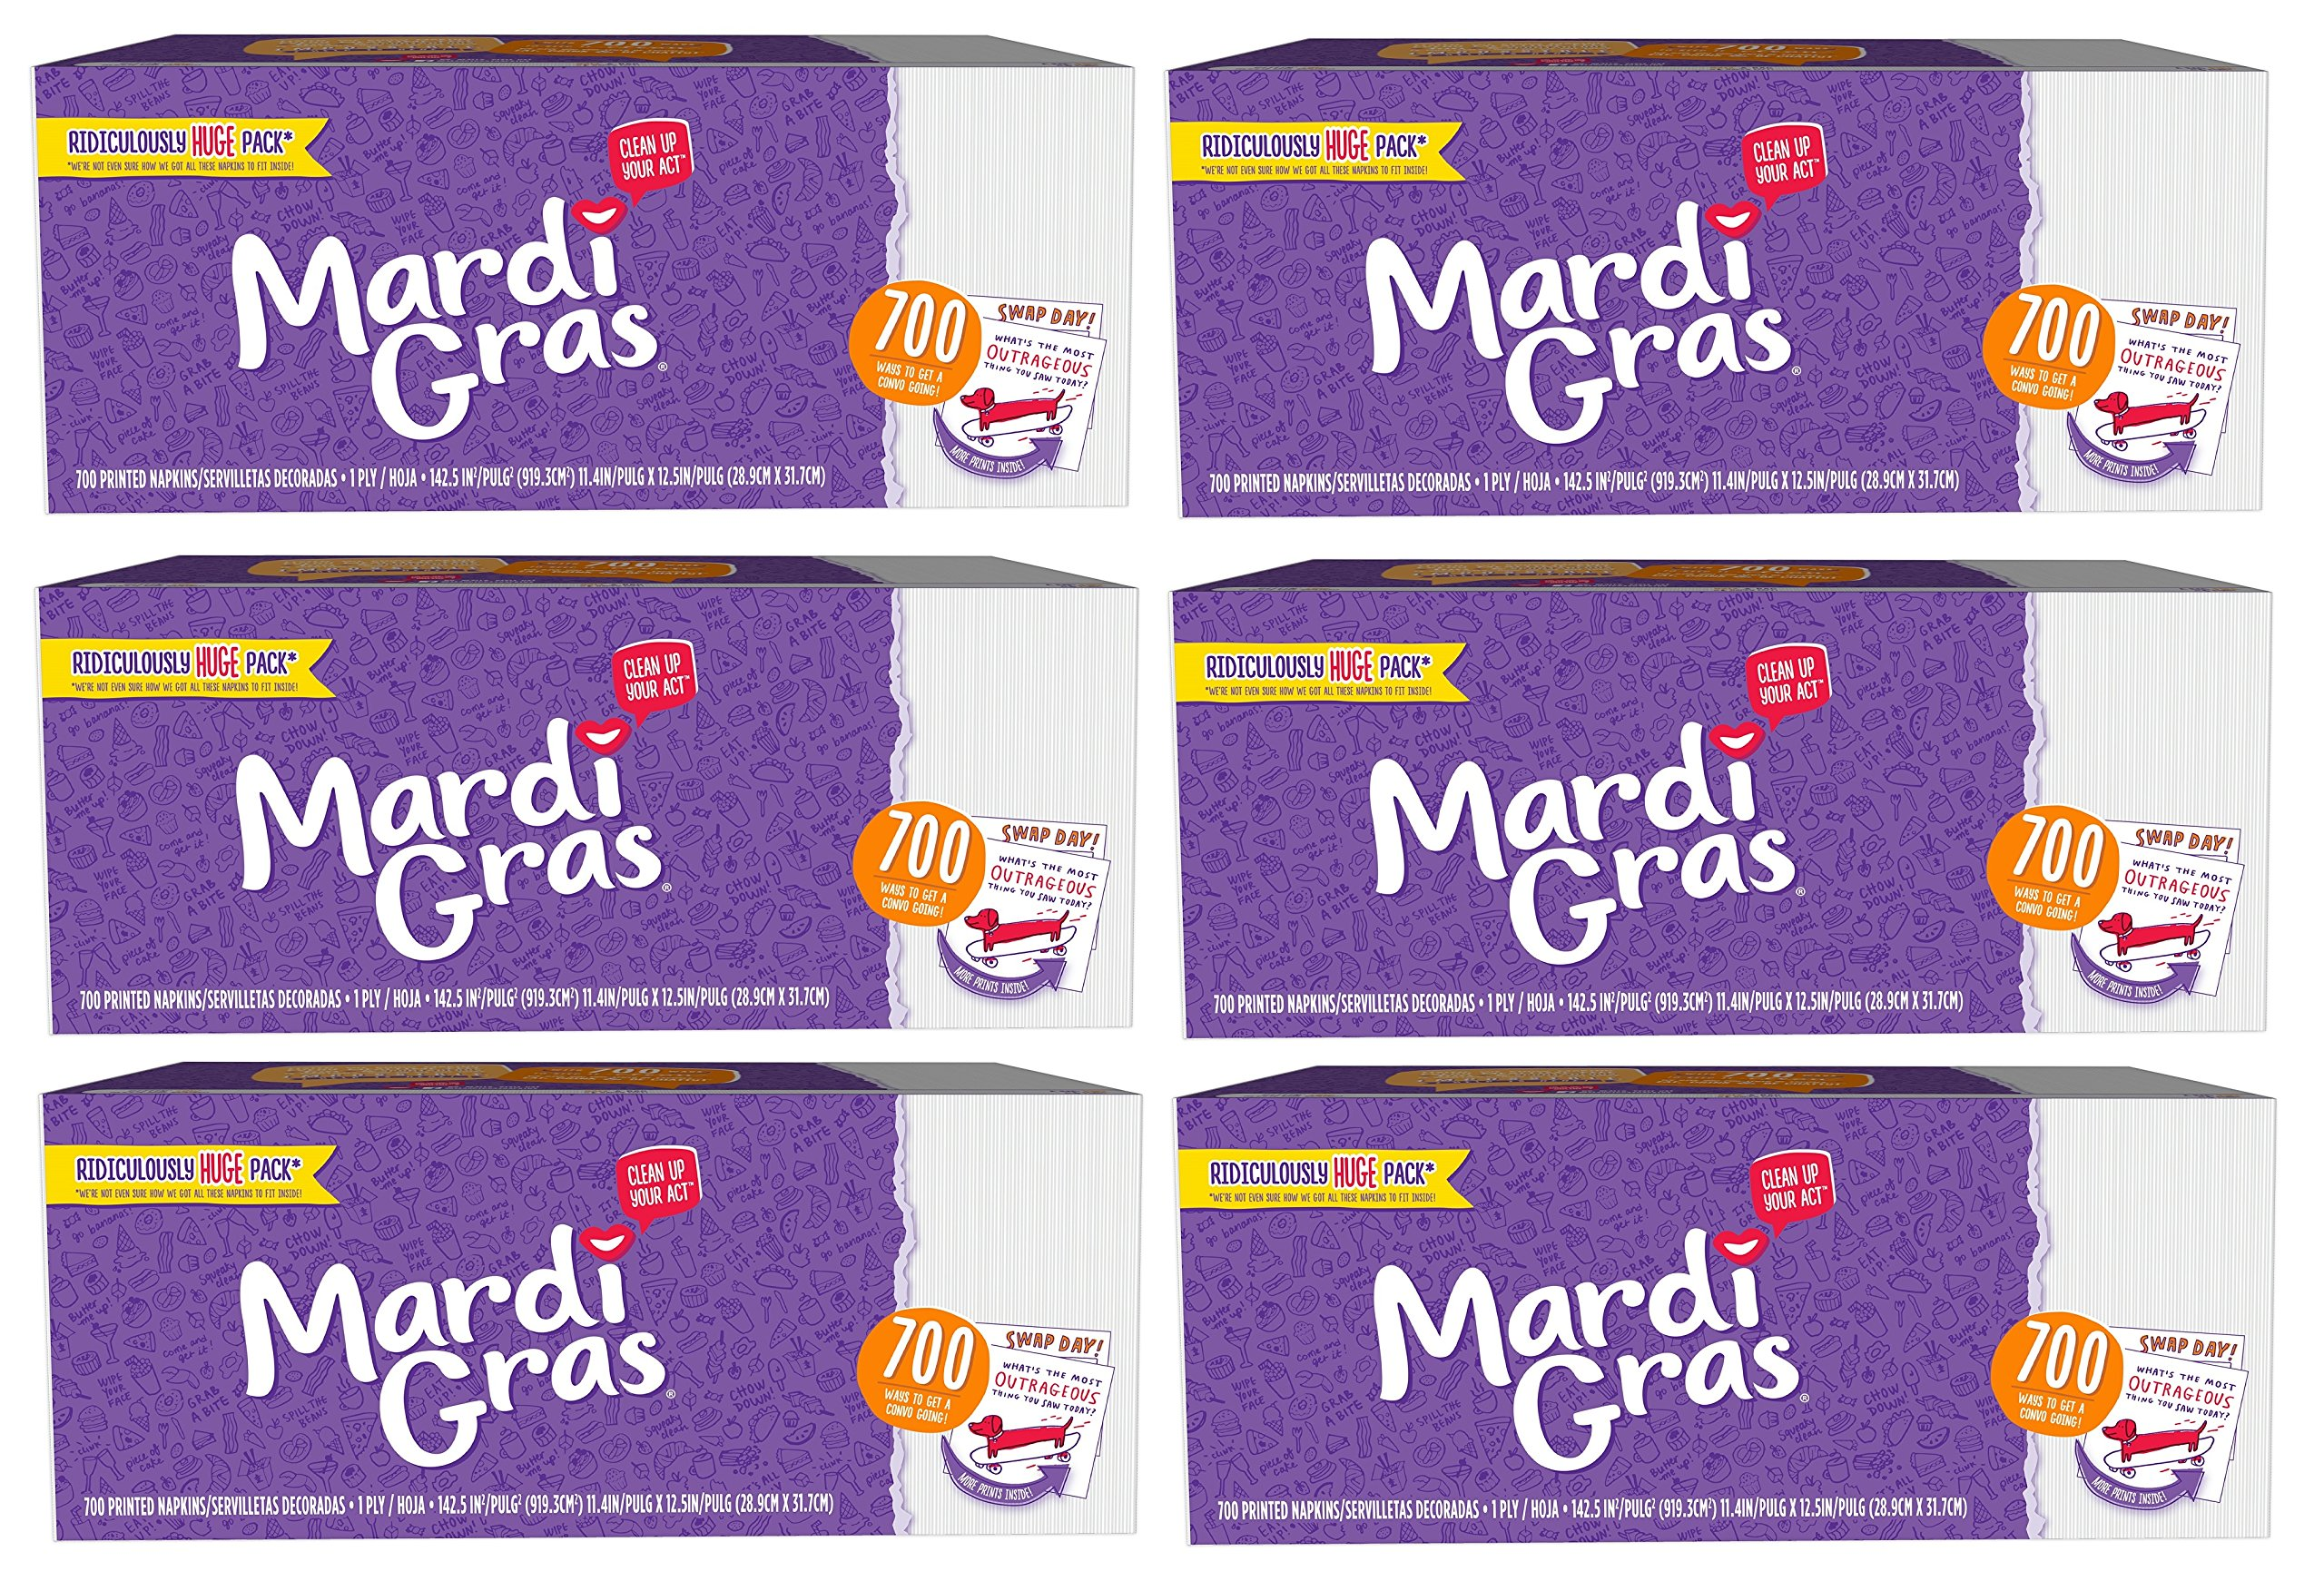 Mardi Gras Napkins 700ct with Conversation Starter Prints! (Pack of 6) Made in USA